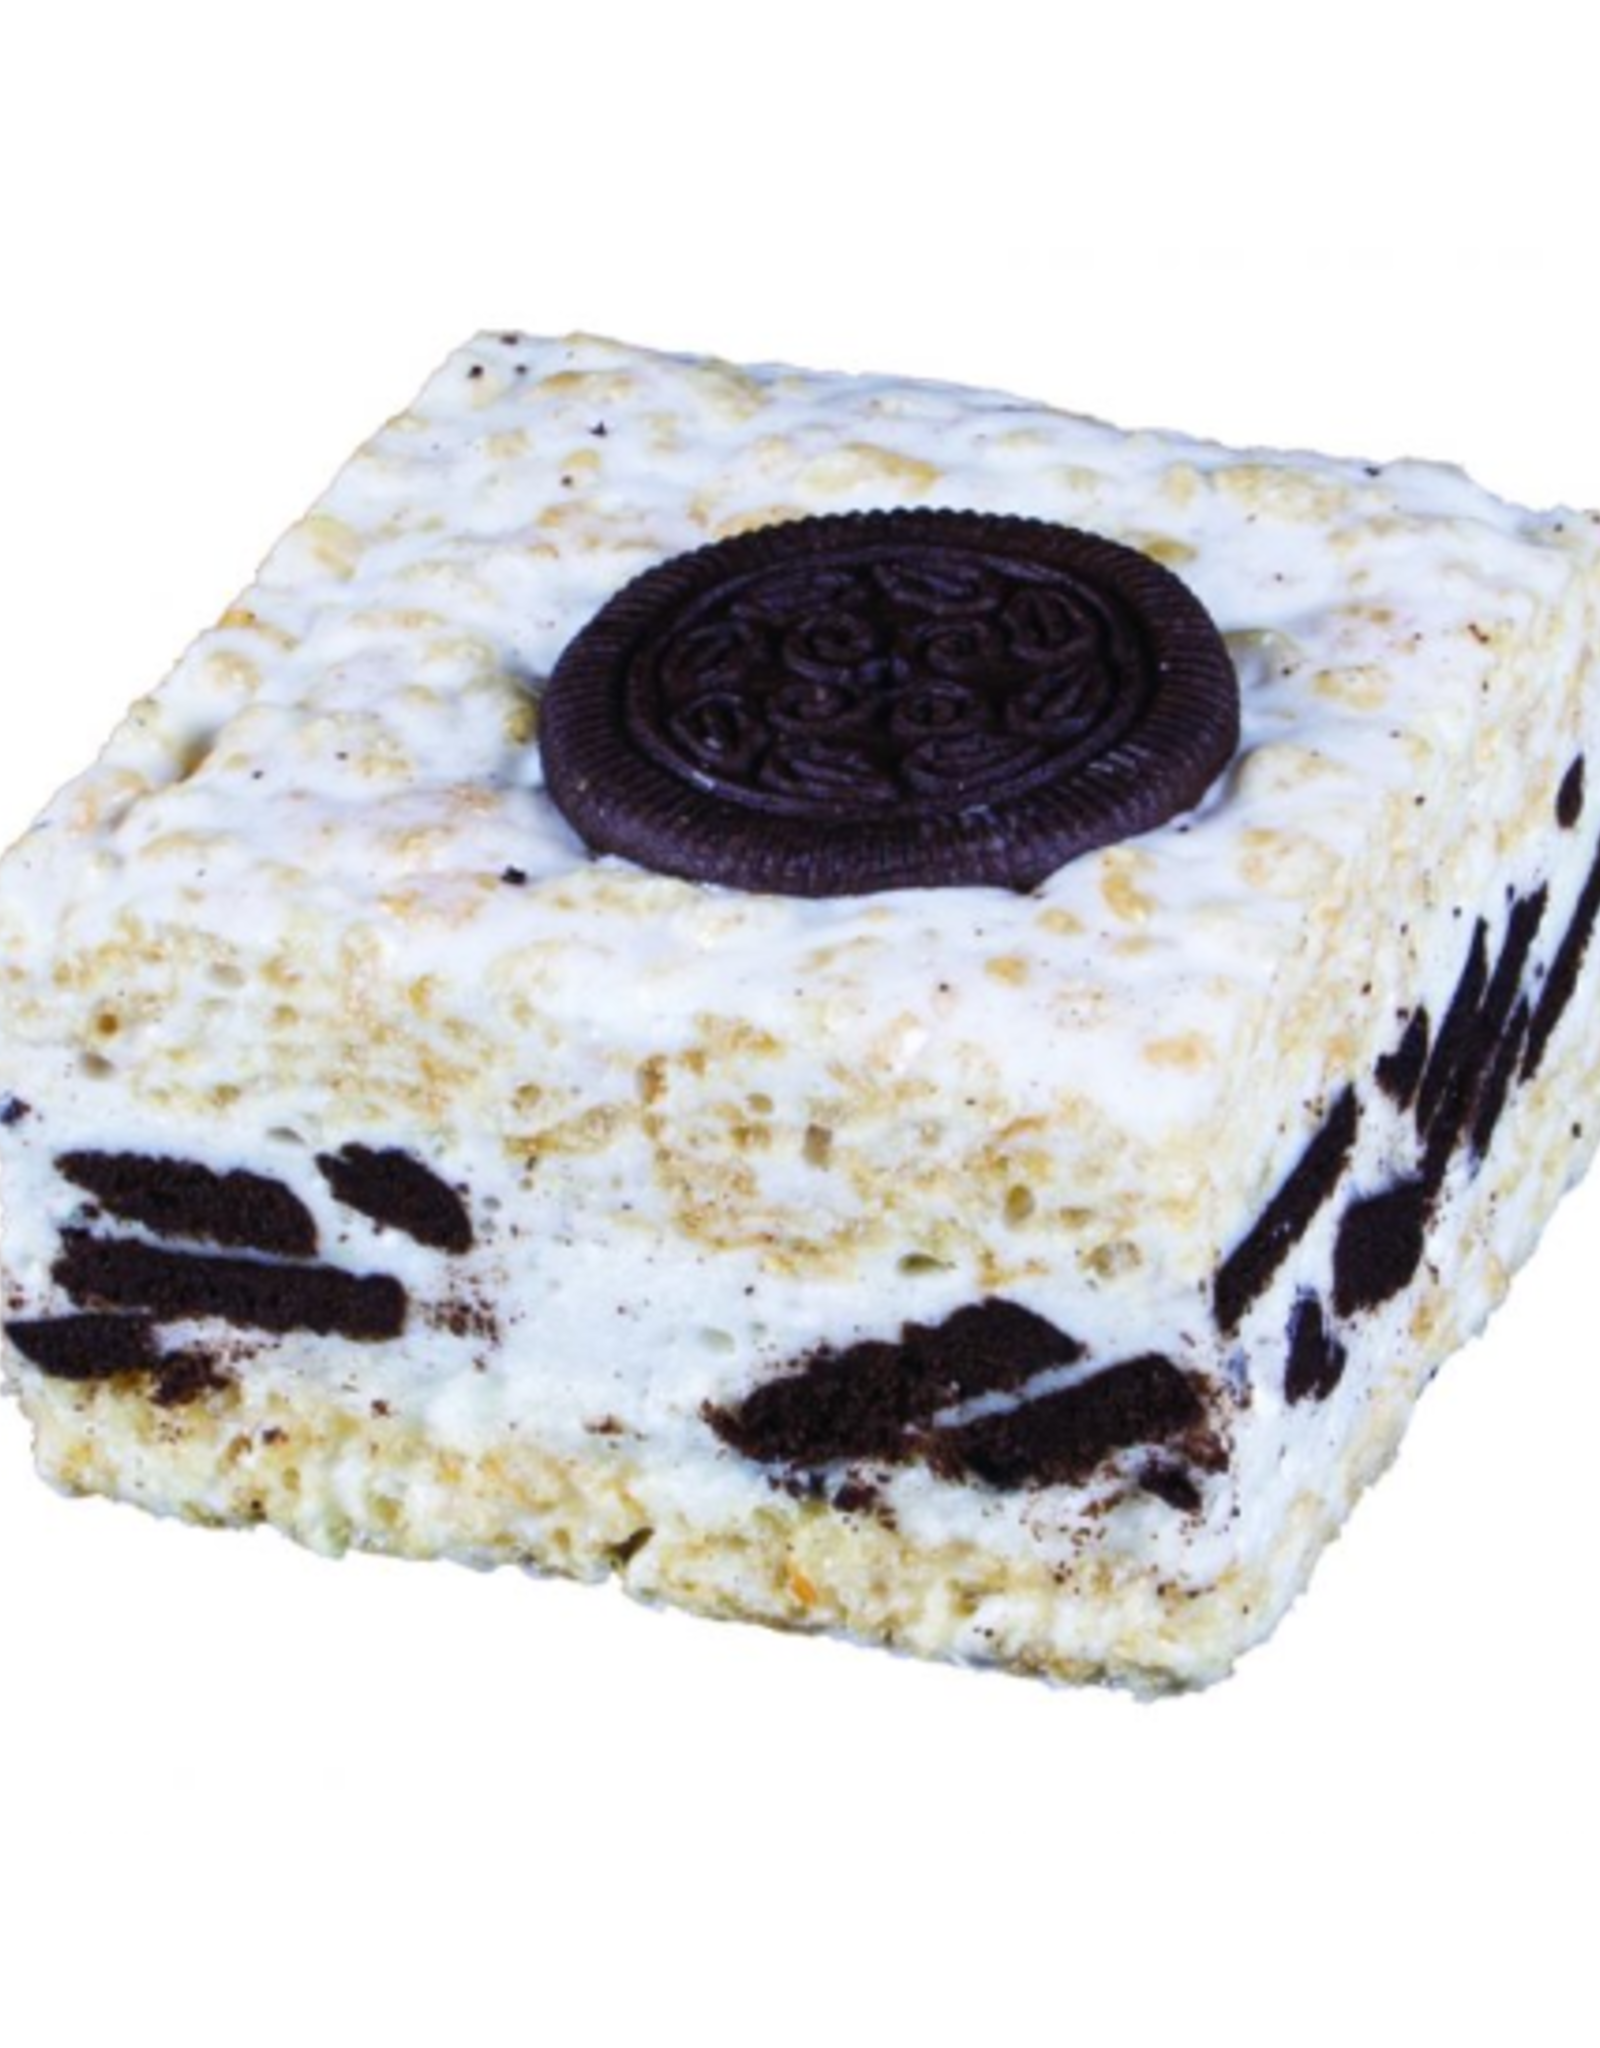 The Crispery CrispyCakes, Cookies & Cream